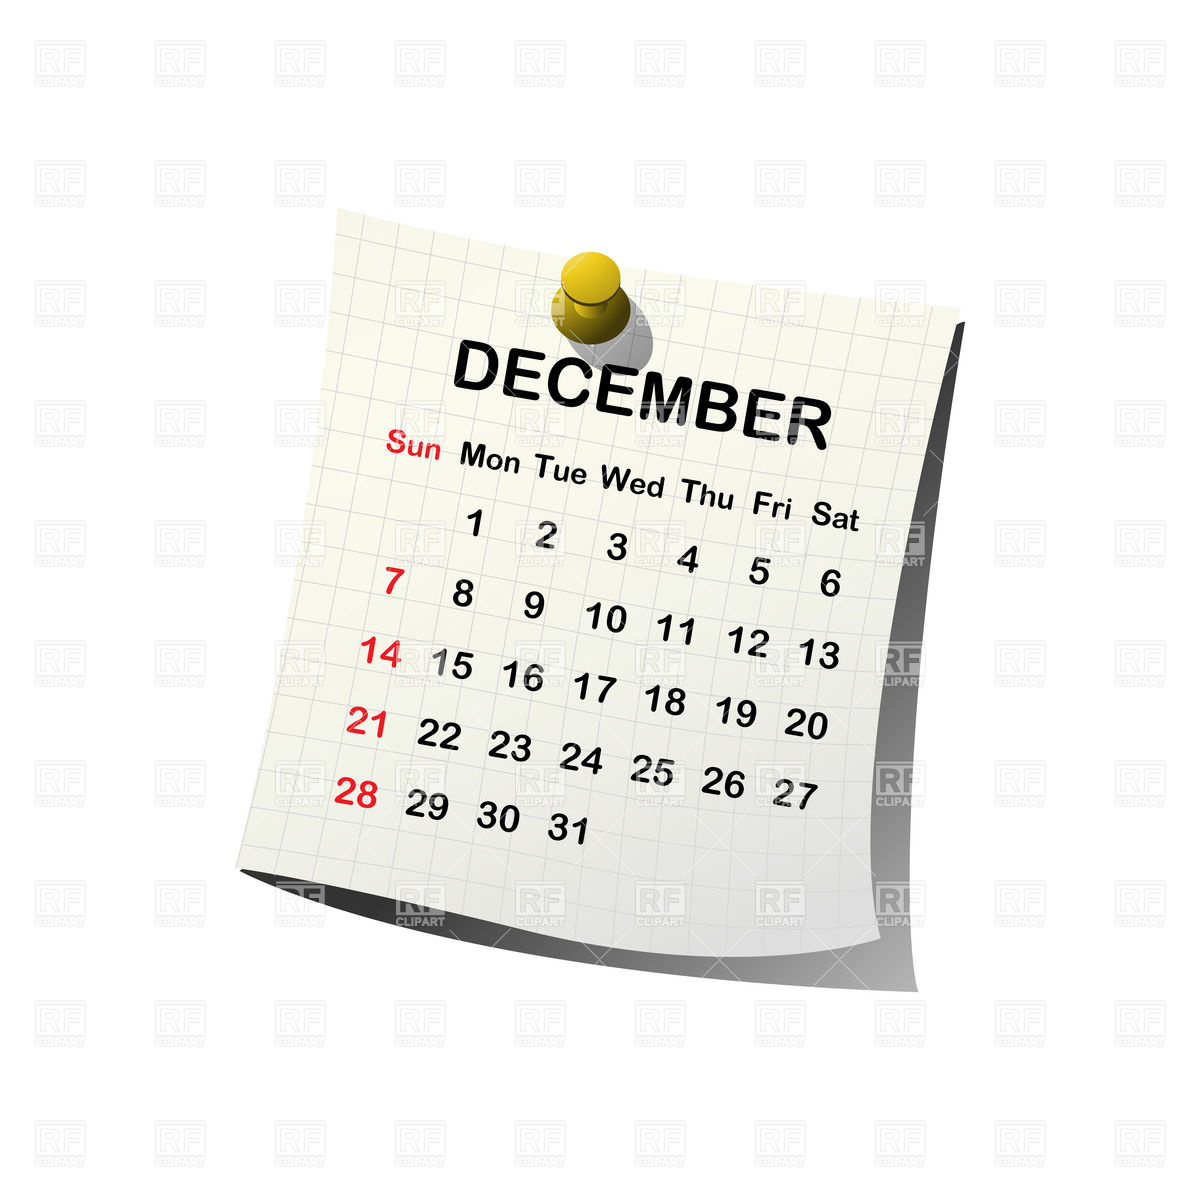 Calendar clipart december 24 banner free library 2016 calendar clipart free december - ClipartFest banner free library